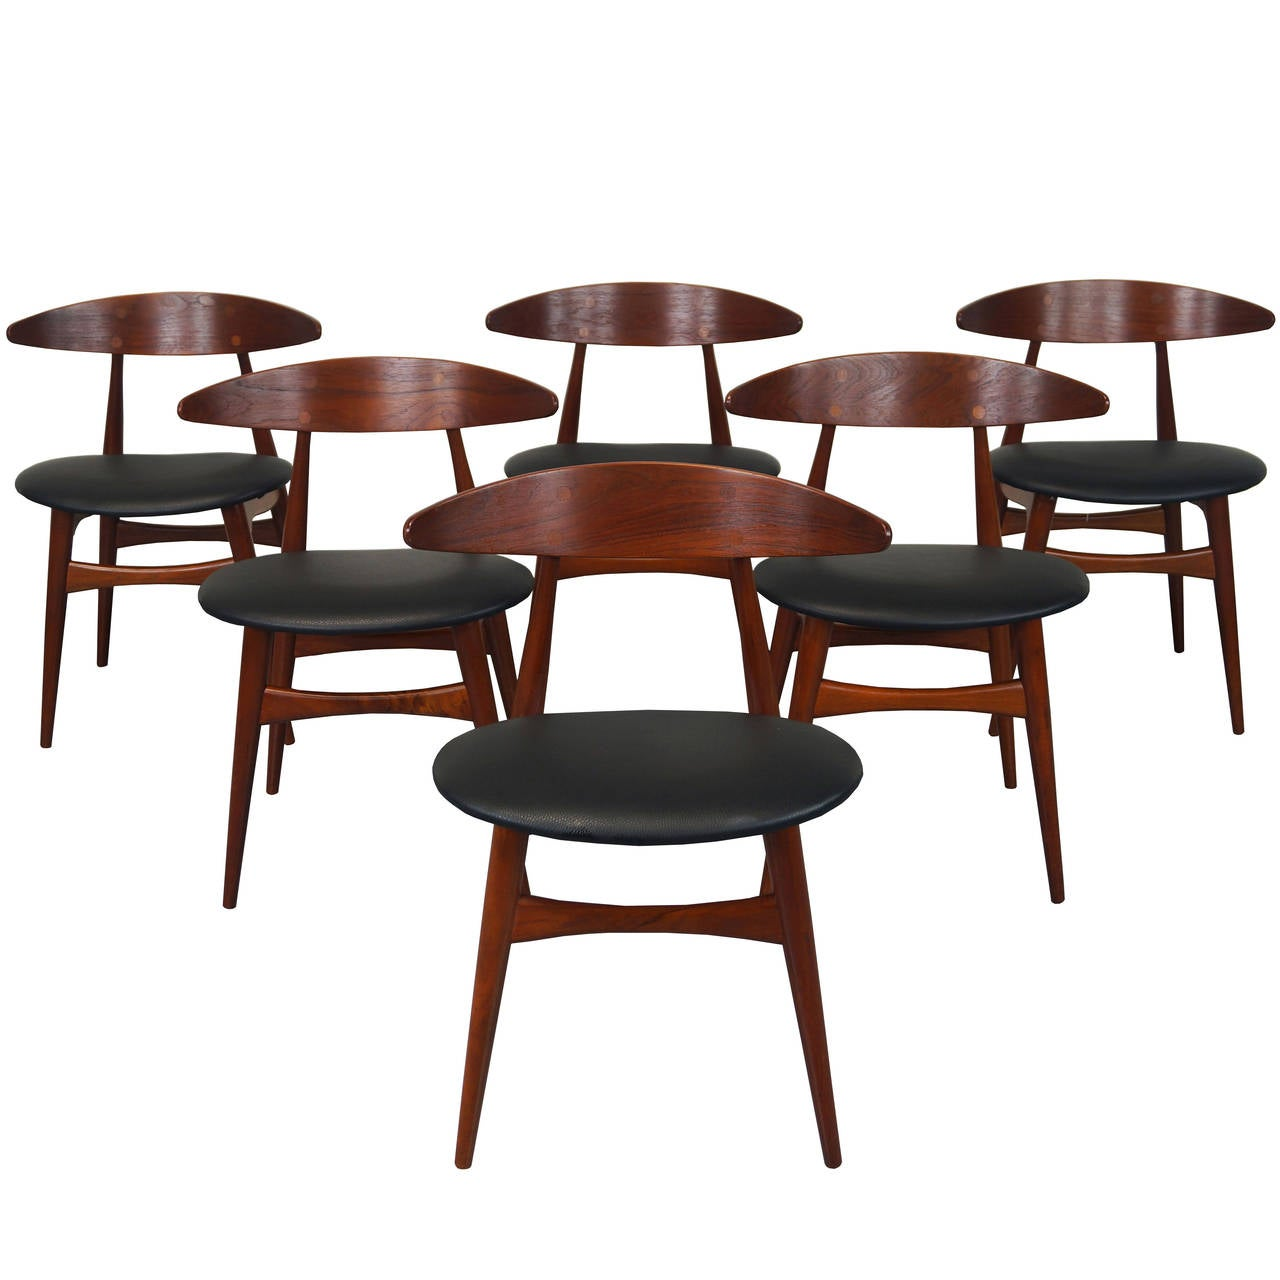 danish ch 33 dining chairs by hans j wegner at 1stdibs. Black Bedroom Furniture Sets. Home Design Ideas